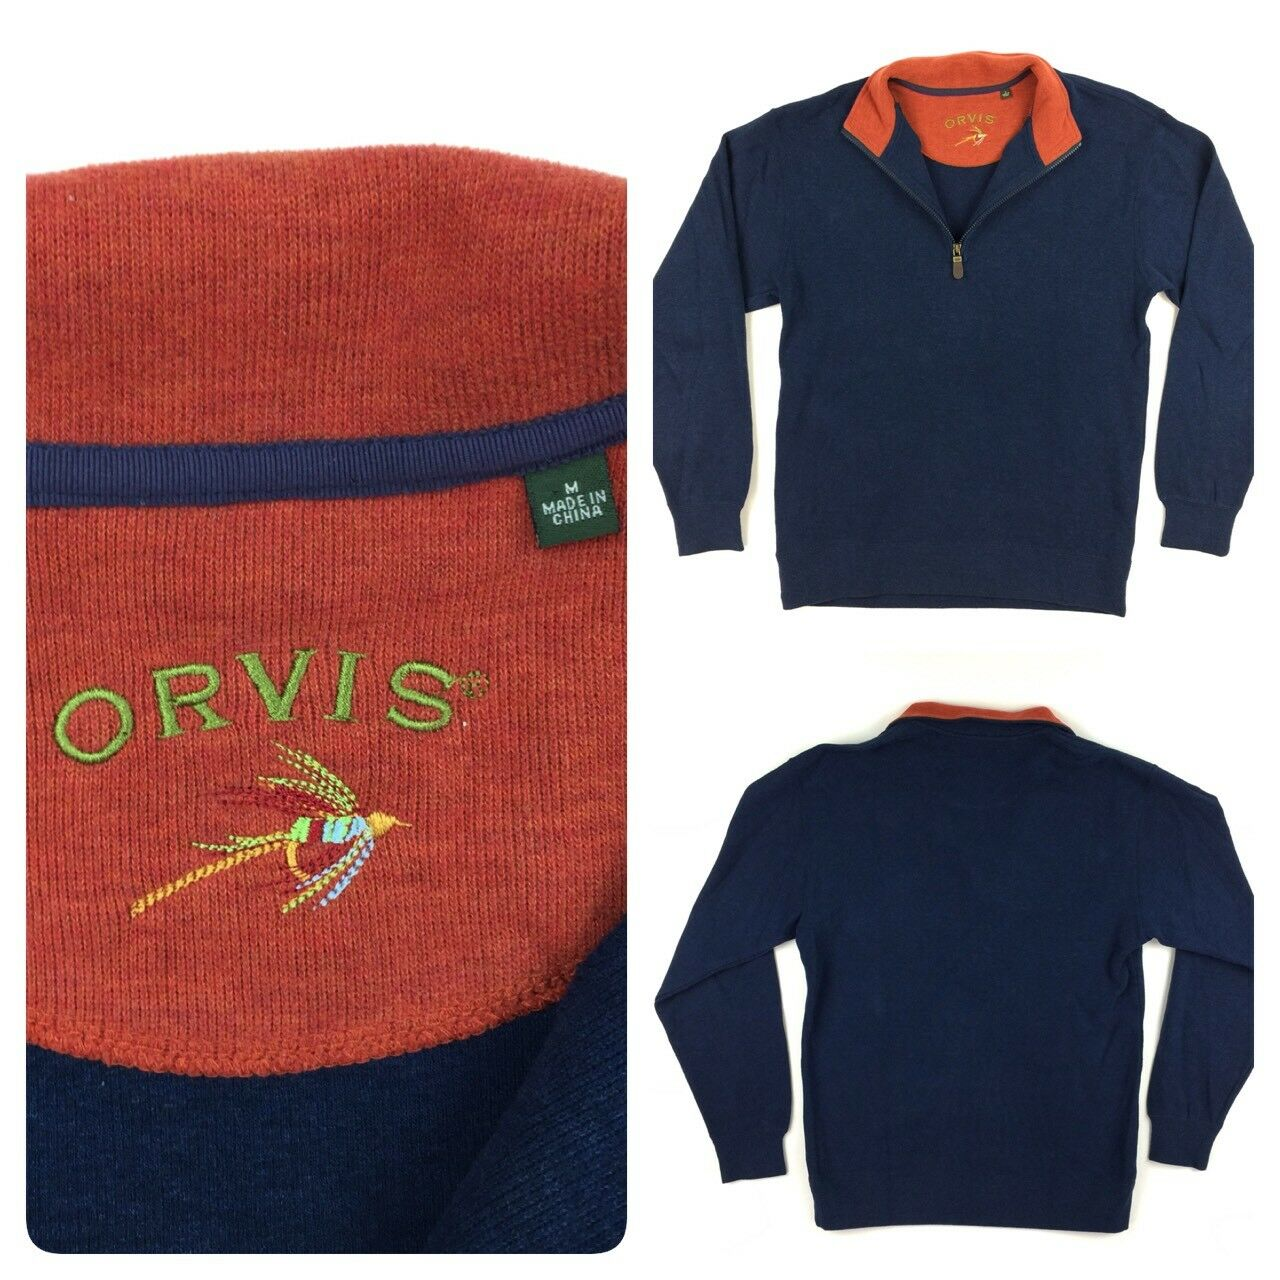 Orvis  Herren Navy / Orange 1/2 Zip Cotton Sweater Medium